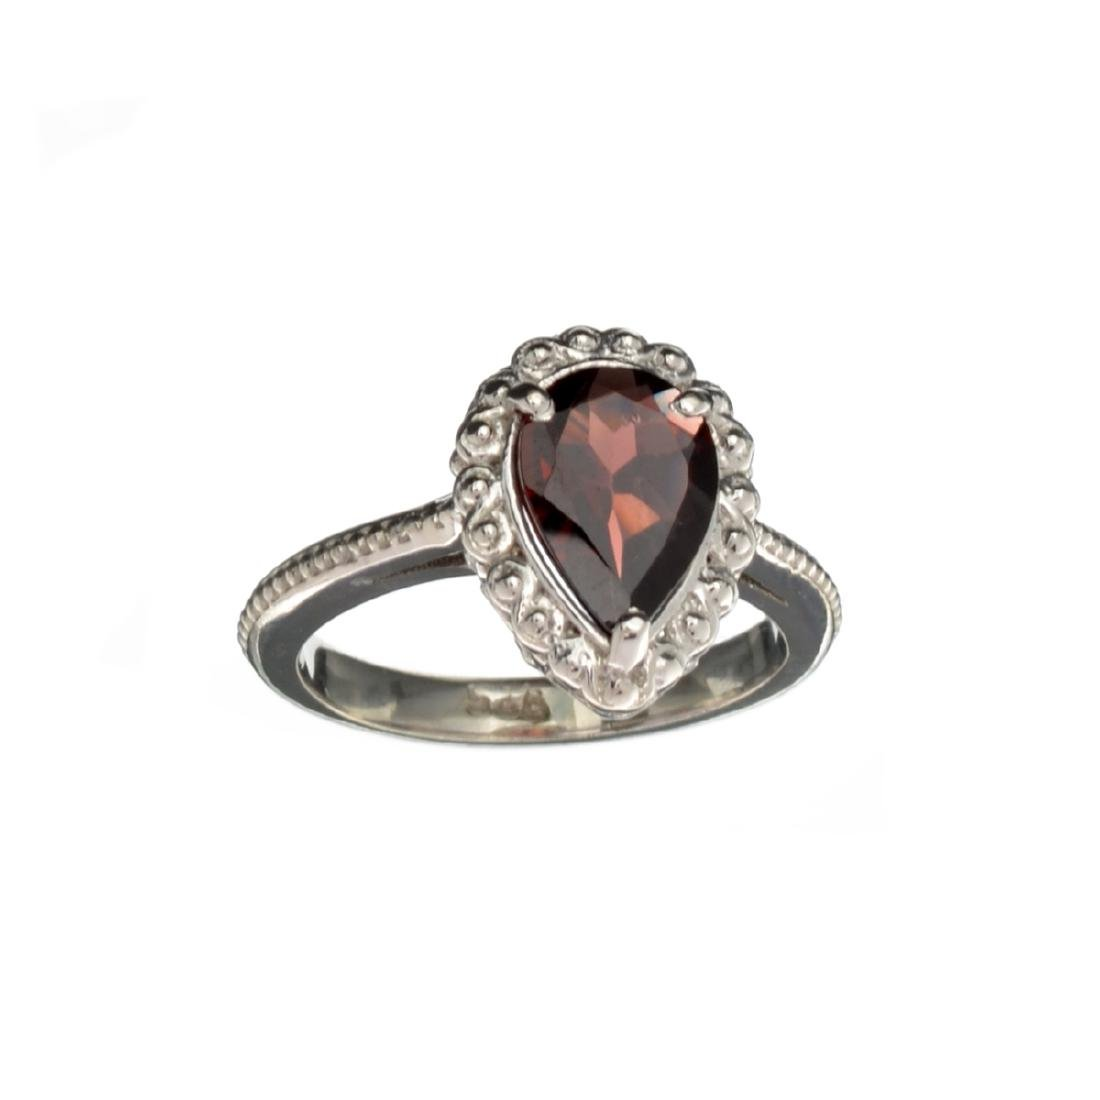 APP: 0.3k Fine Jewelry 2.27CT Pear Cut Red Almandite